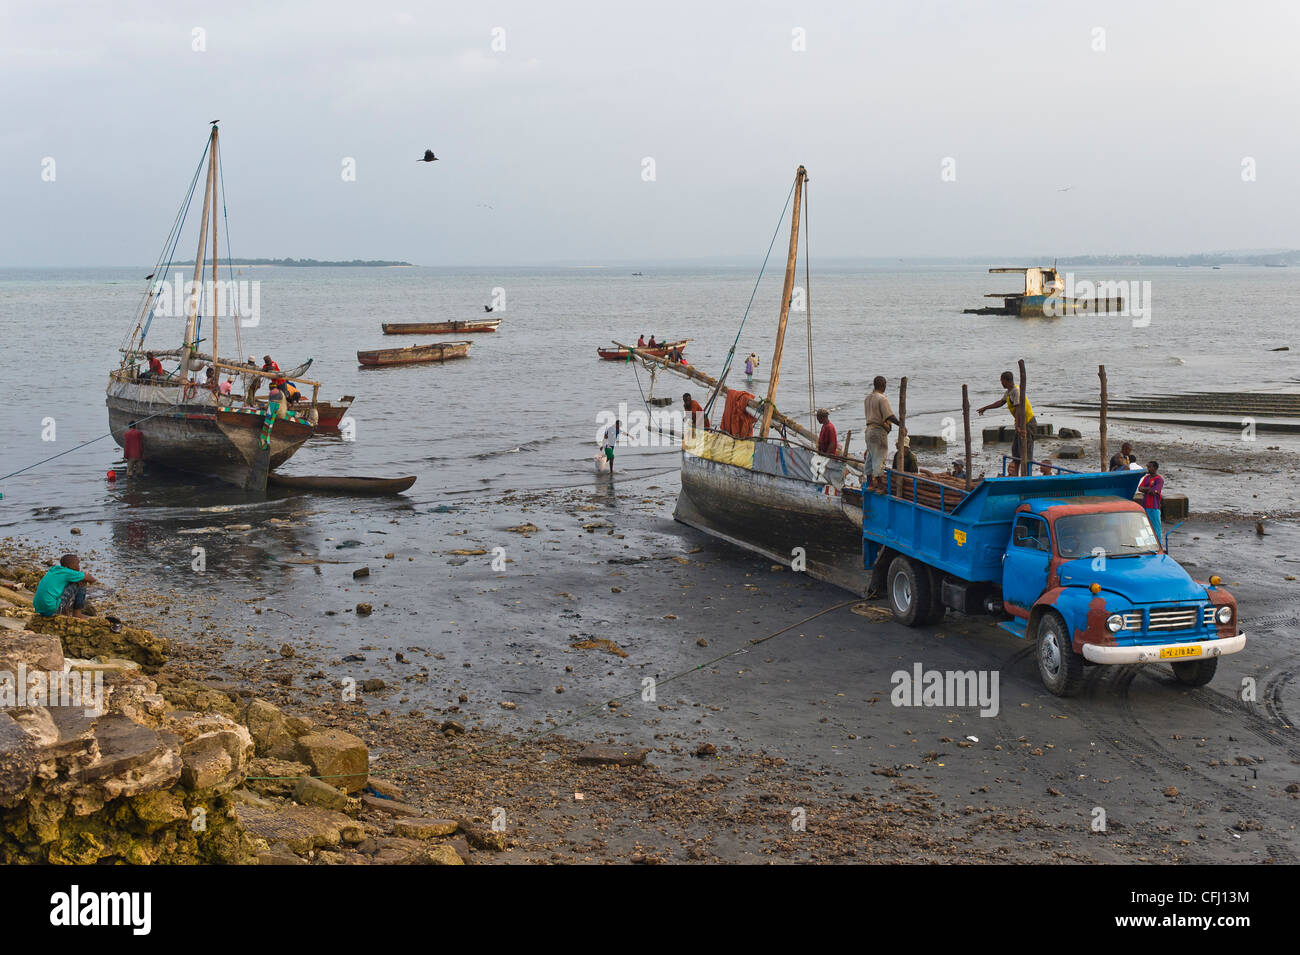 Collection of Mangrove poles shipped with Dhows to Stone Town Zanzibar Tanzania - Stock Image